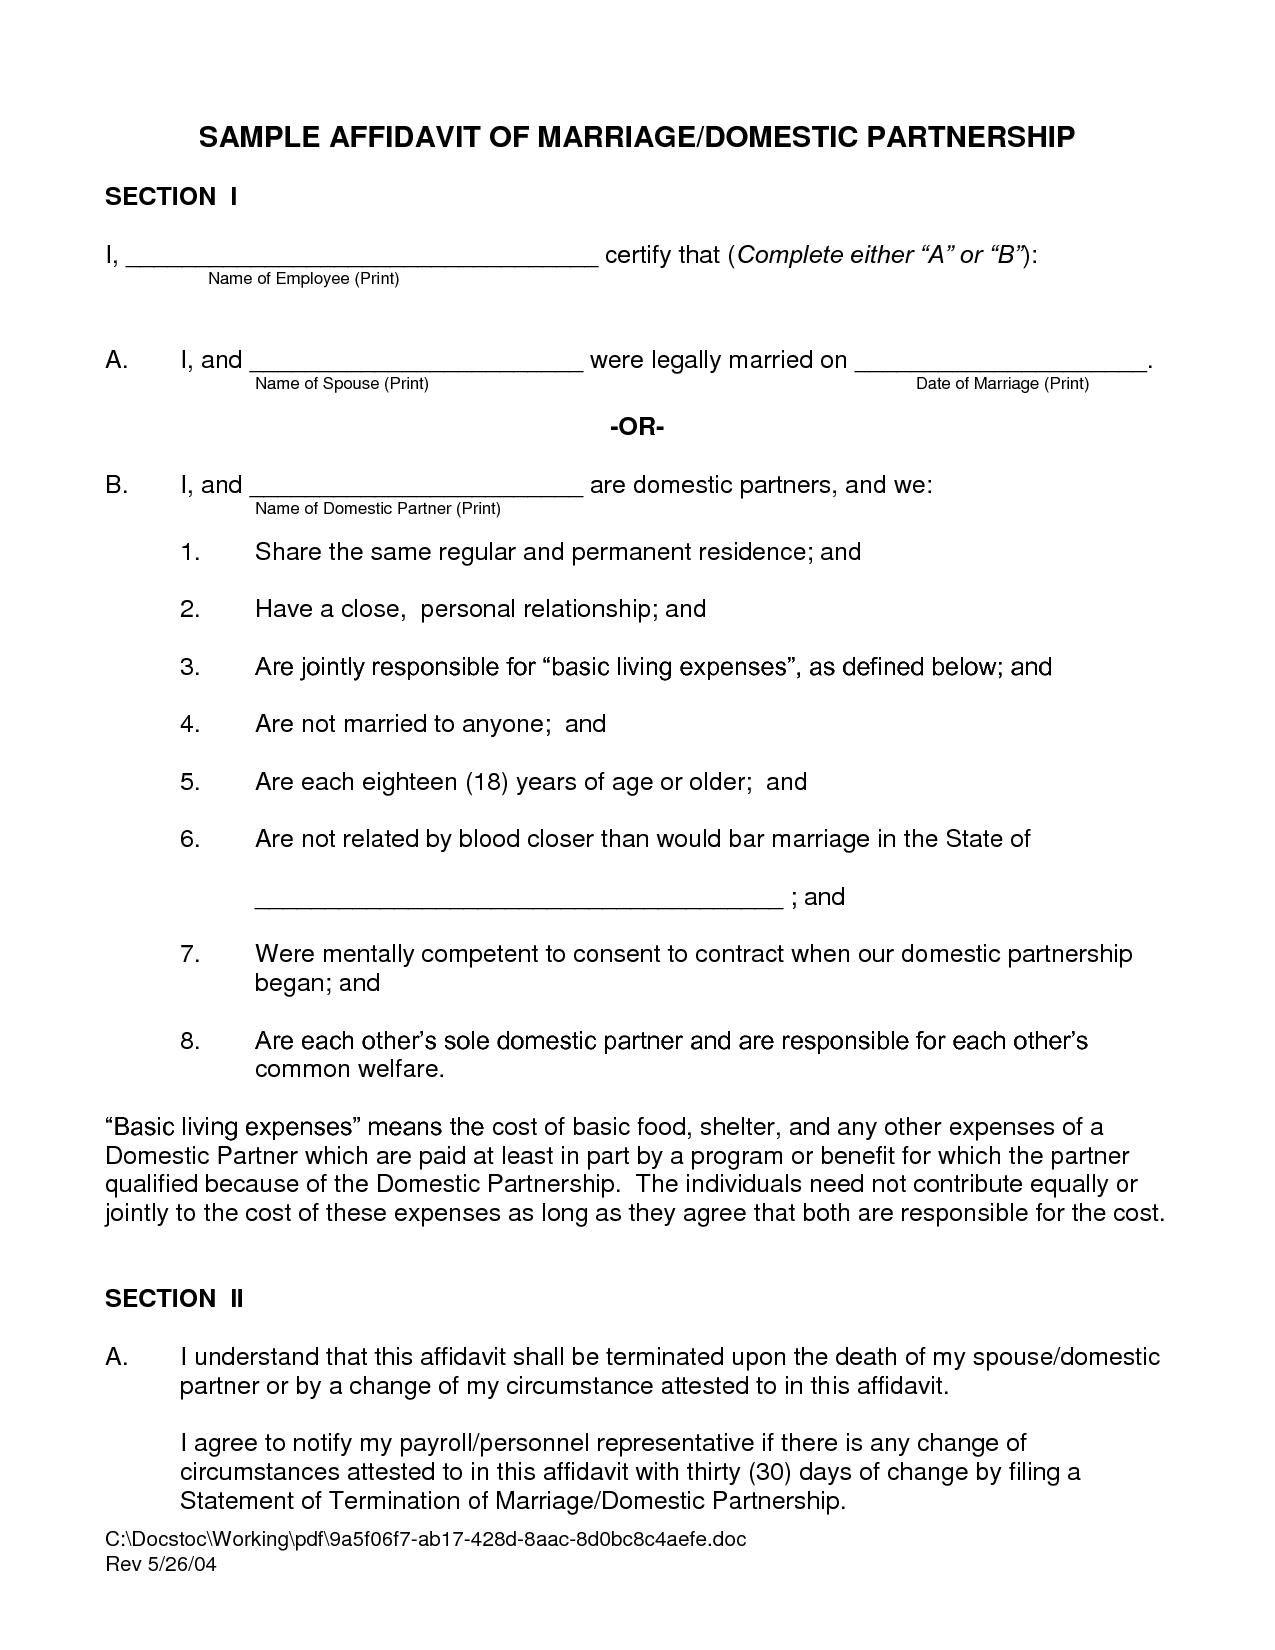 Sample Affidavit Marriage By Iol13865   Marriage Affidavit Template  Affidavit Template Doc